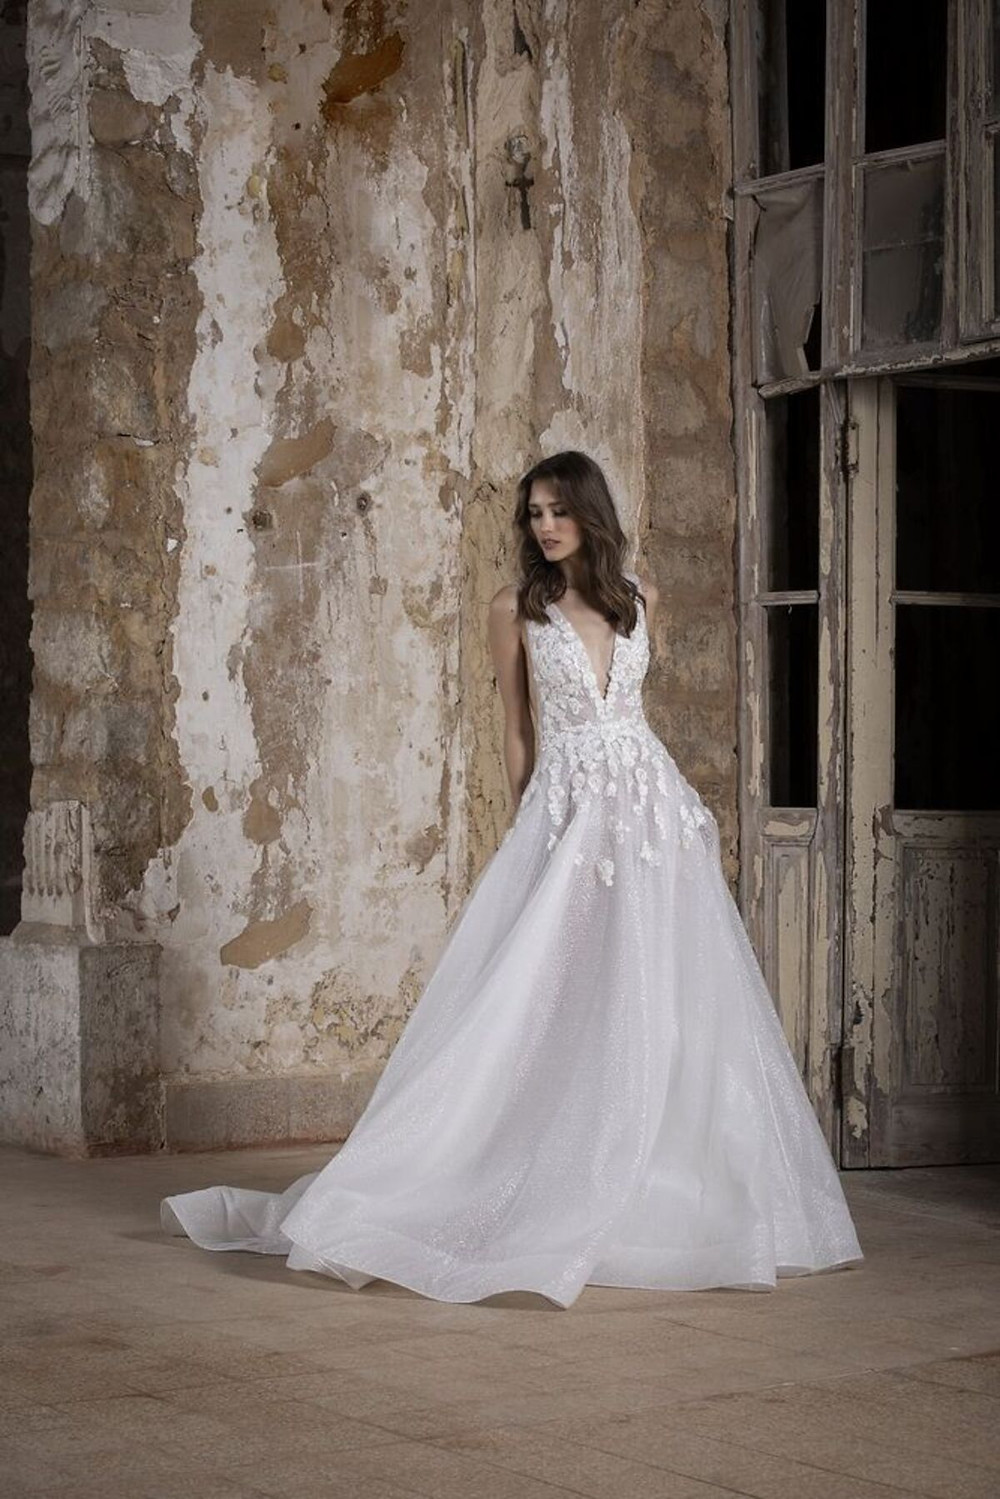 An A-line wedding dress made of embroidered tulle and cascading silk flowers